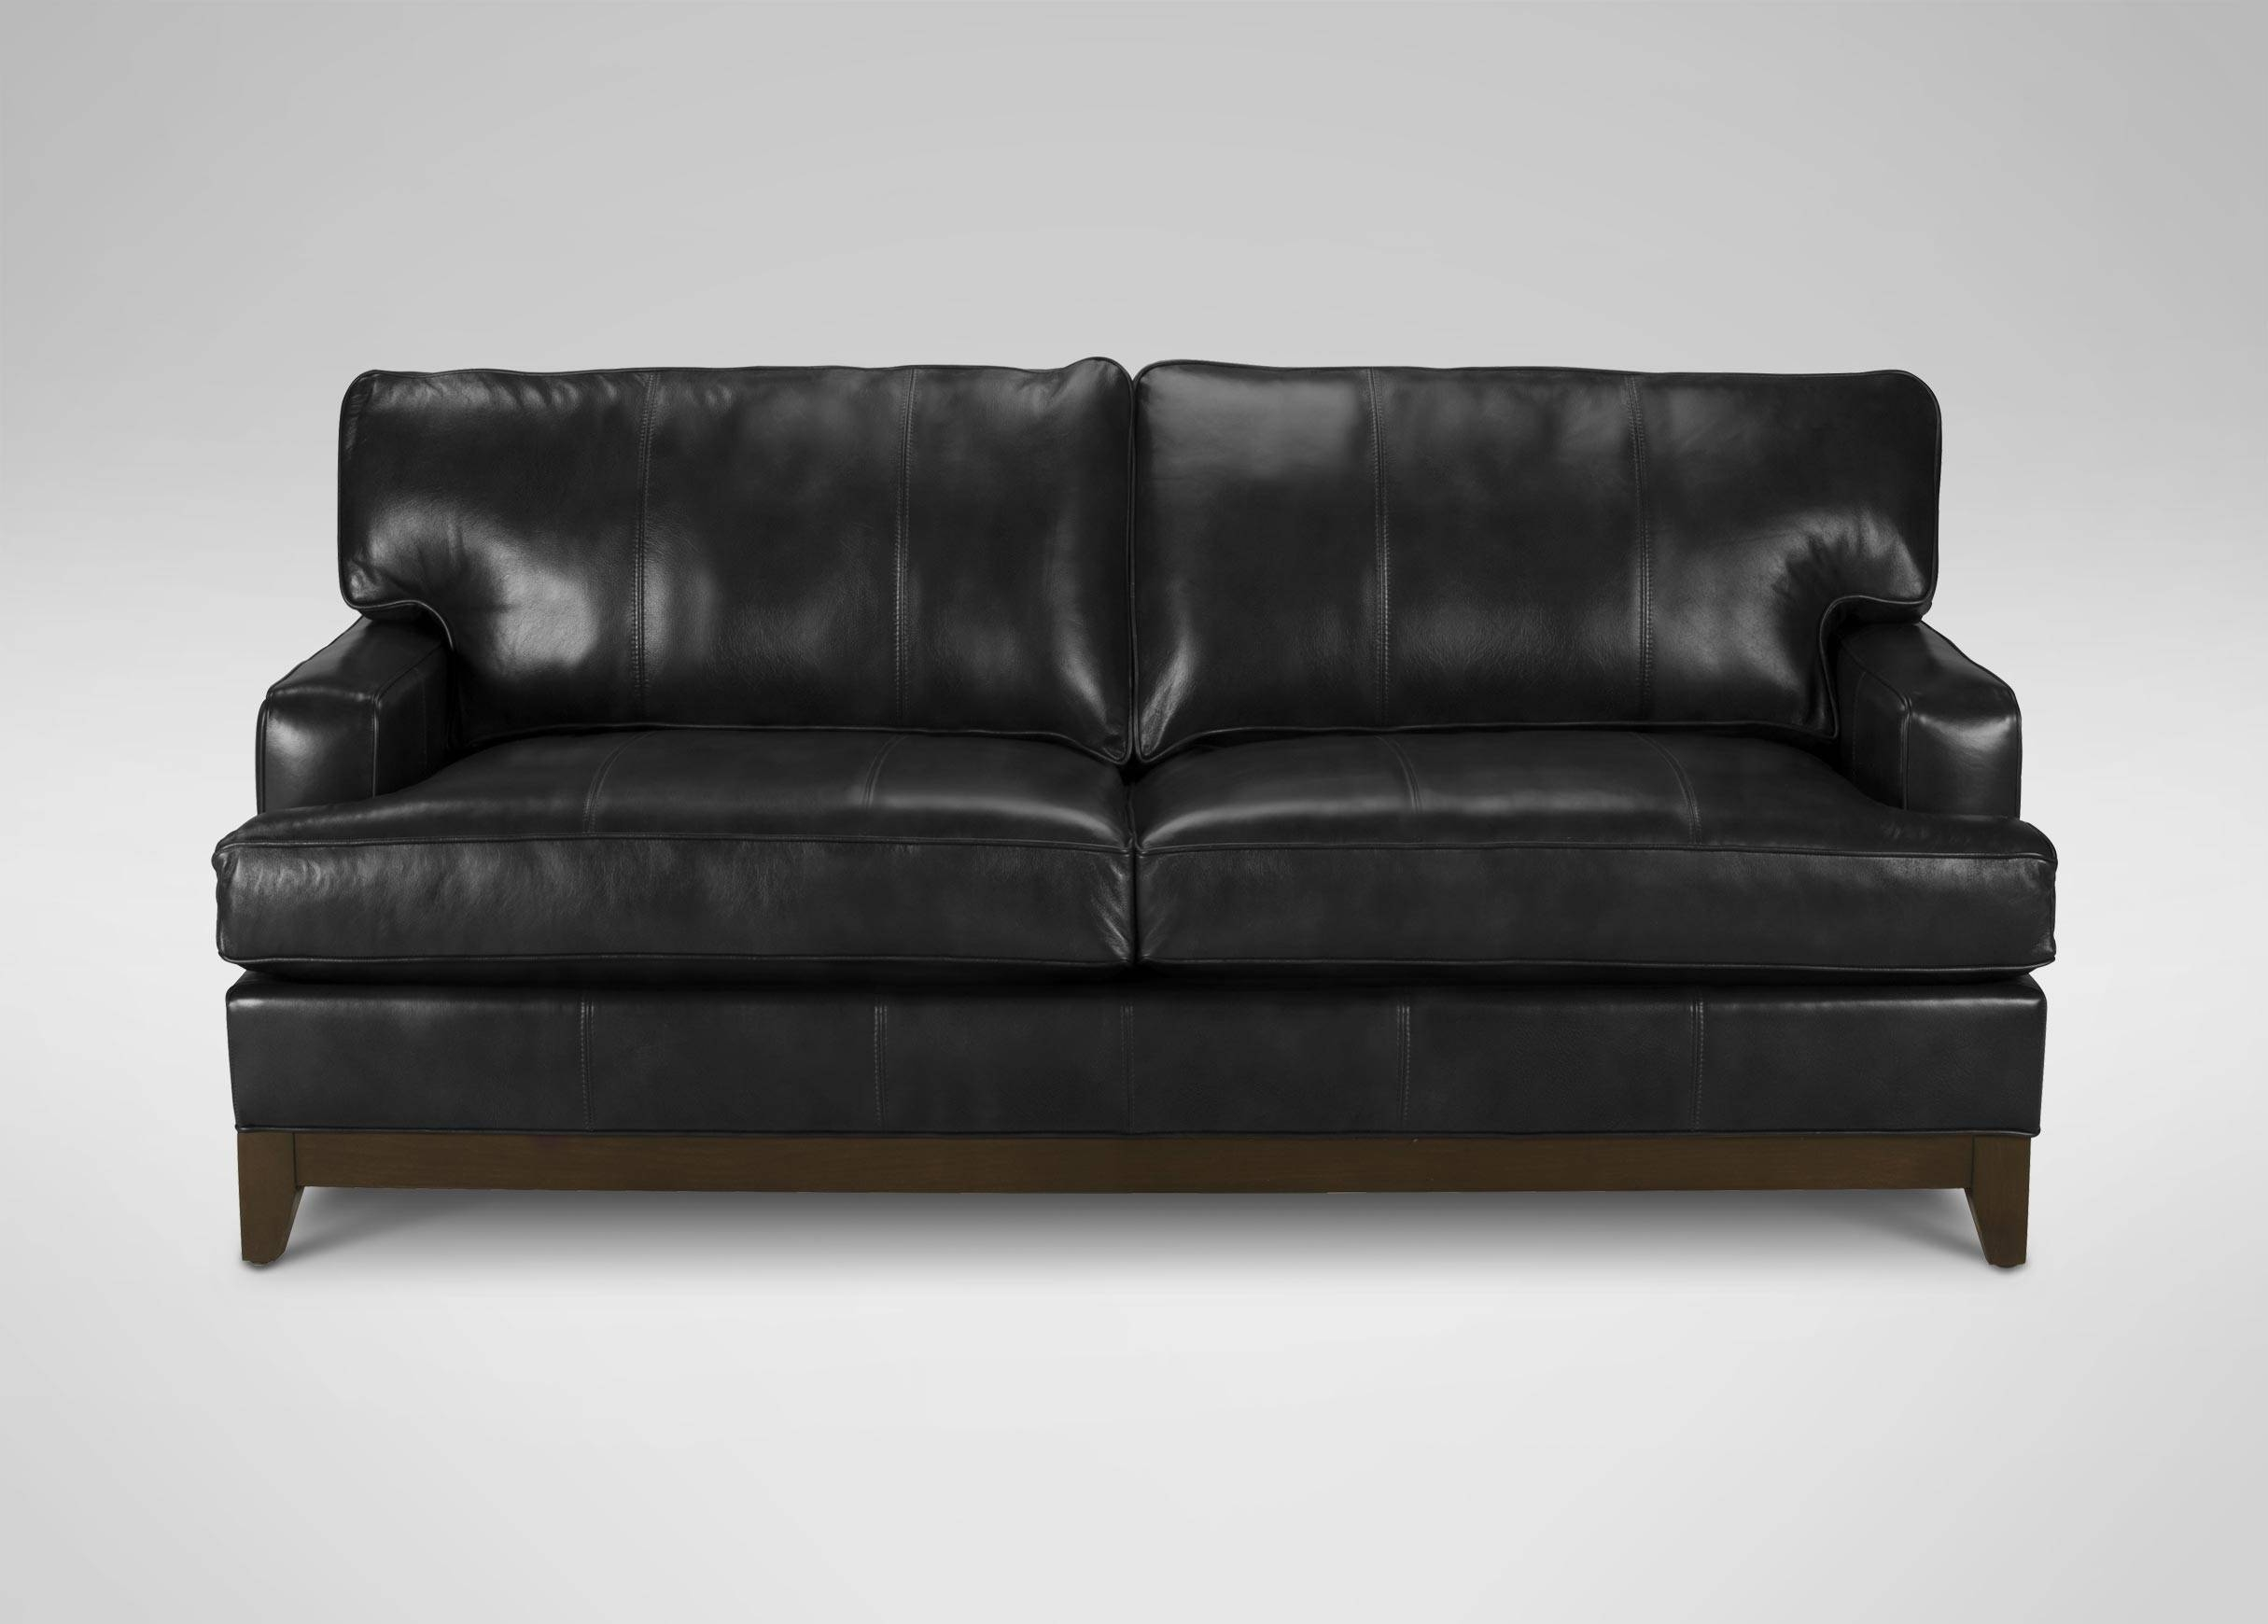 Arcata Sofa - Ethan Allen intended for Ethan Allen Chesterfield Sofas (Image 1 of 15)